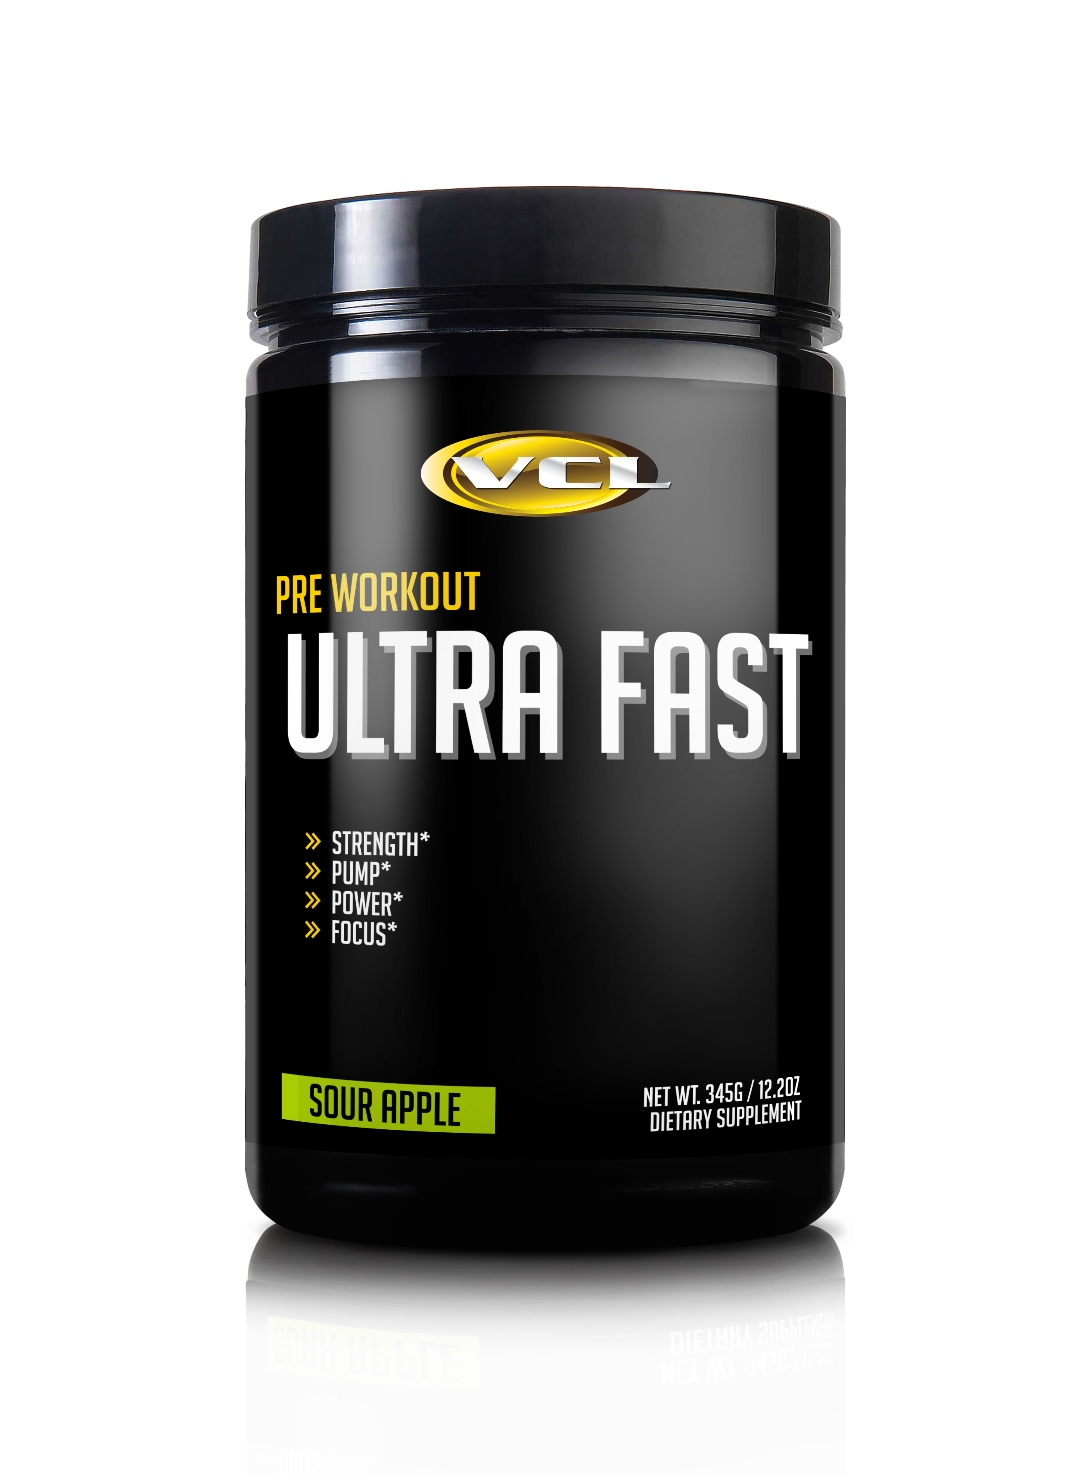 Ultra Fast Vcl Nutrition